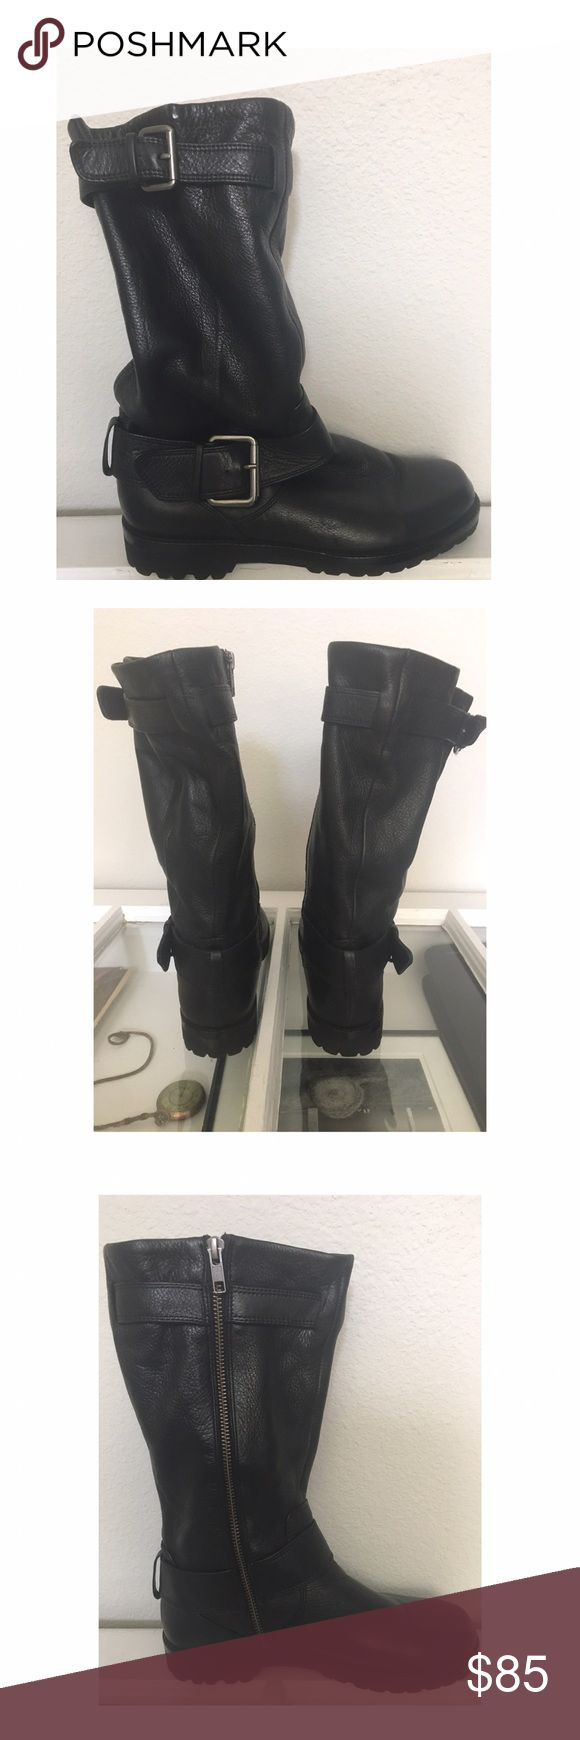 "Gentle Souls by Cole Hann ""Buckled Up"" Boot Soft buttery leather, perfect mid calf Moto boot. Maybe worn once? In like new condition! gentle souls Shoes Combat & Moto Boots"